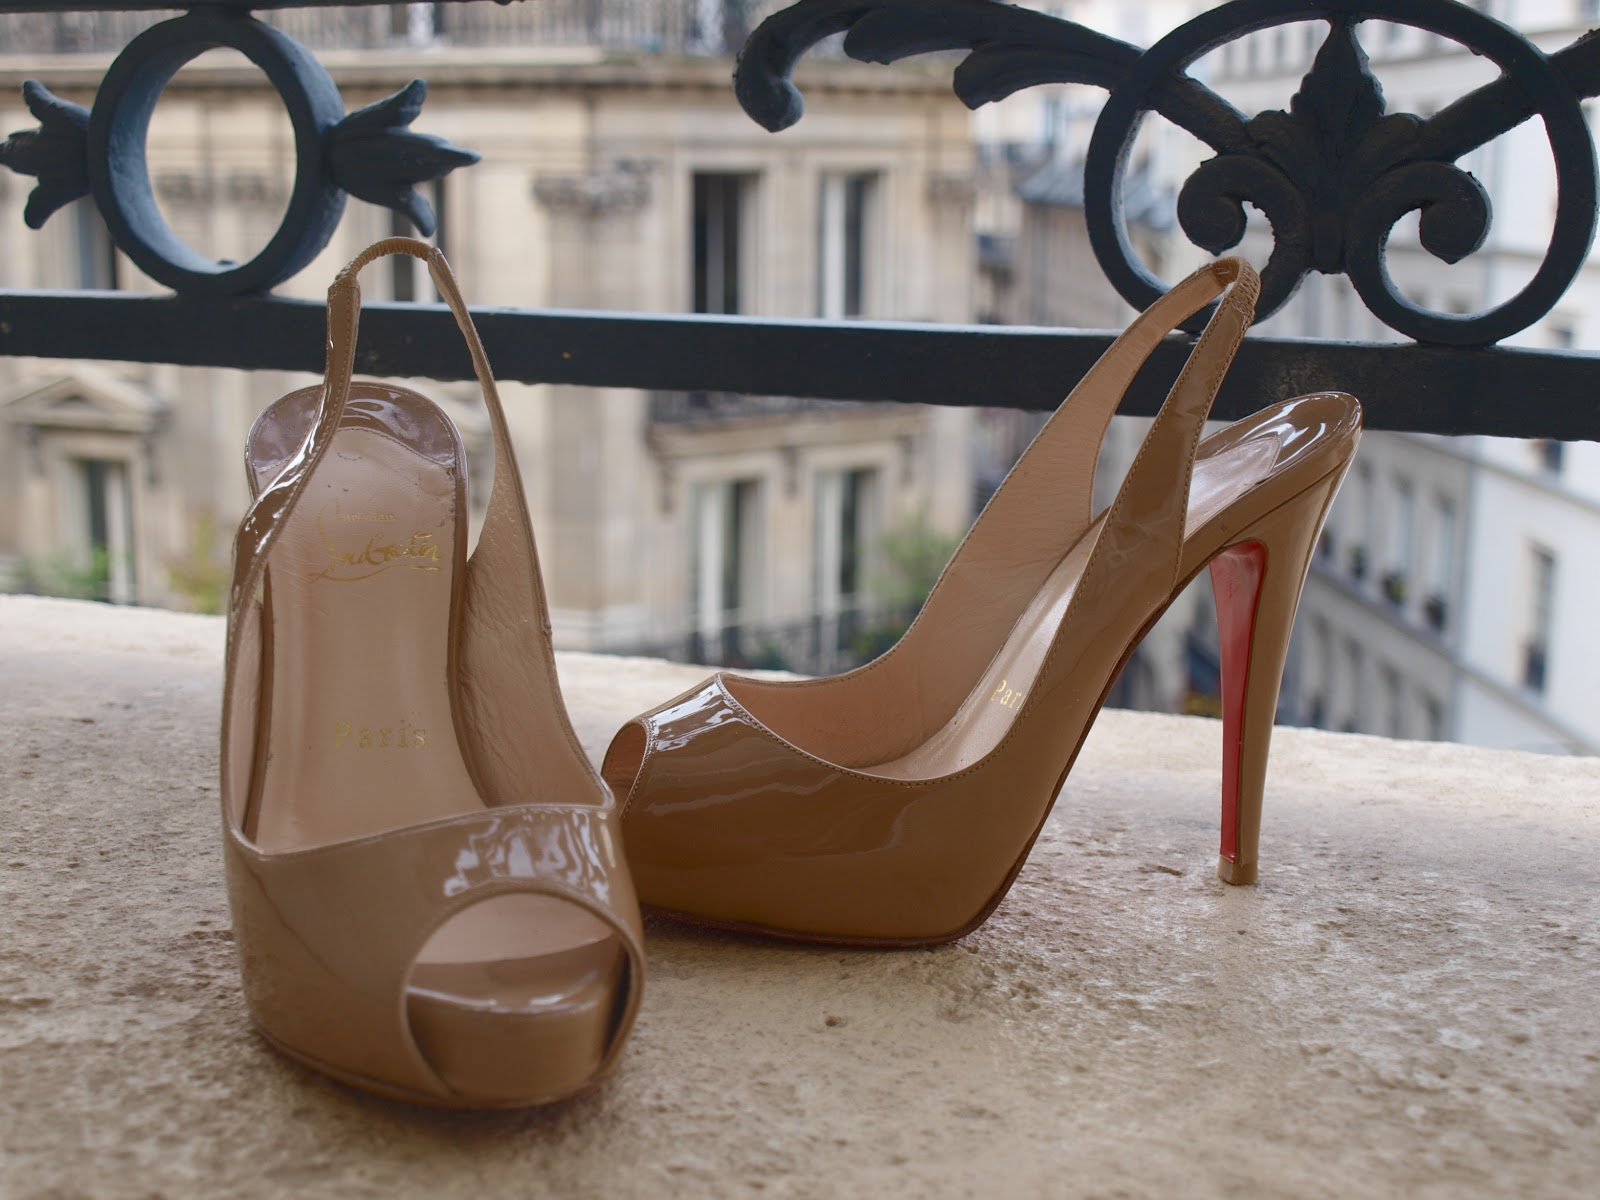 Louboutin pumps on a #Parisapartment balcony by Hello Lovely Studio